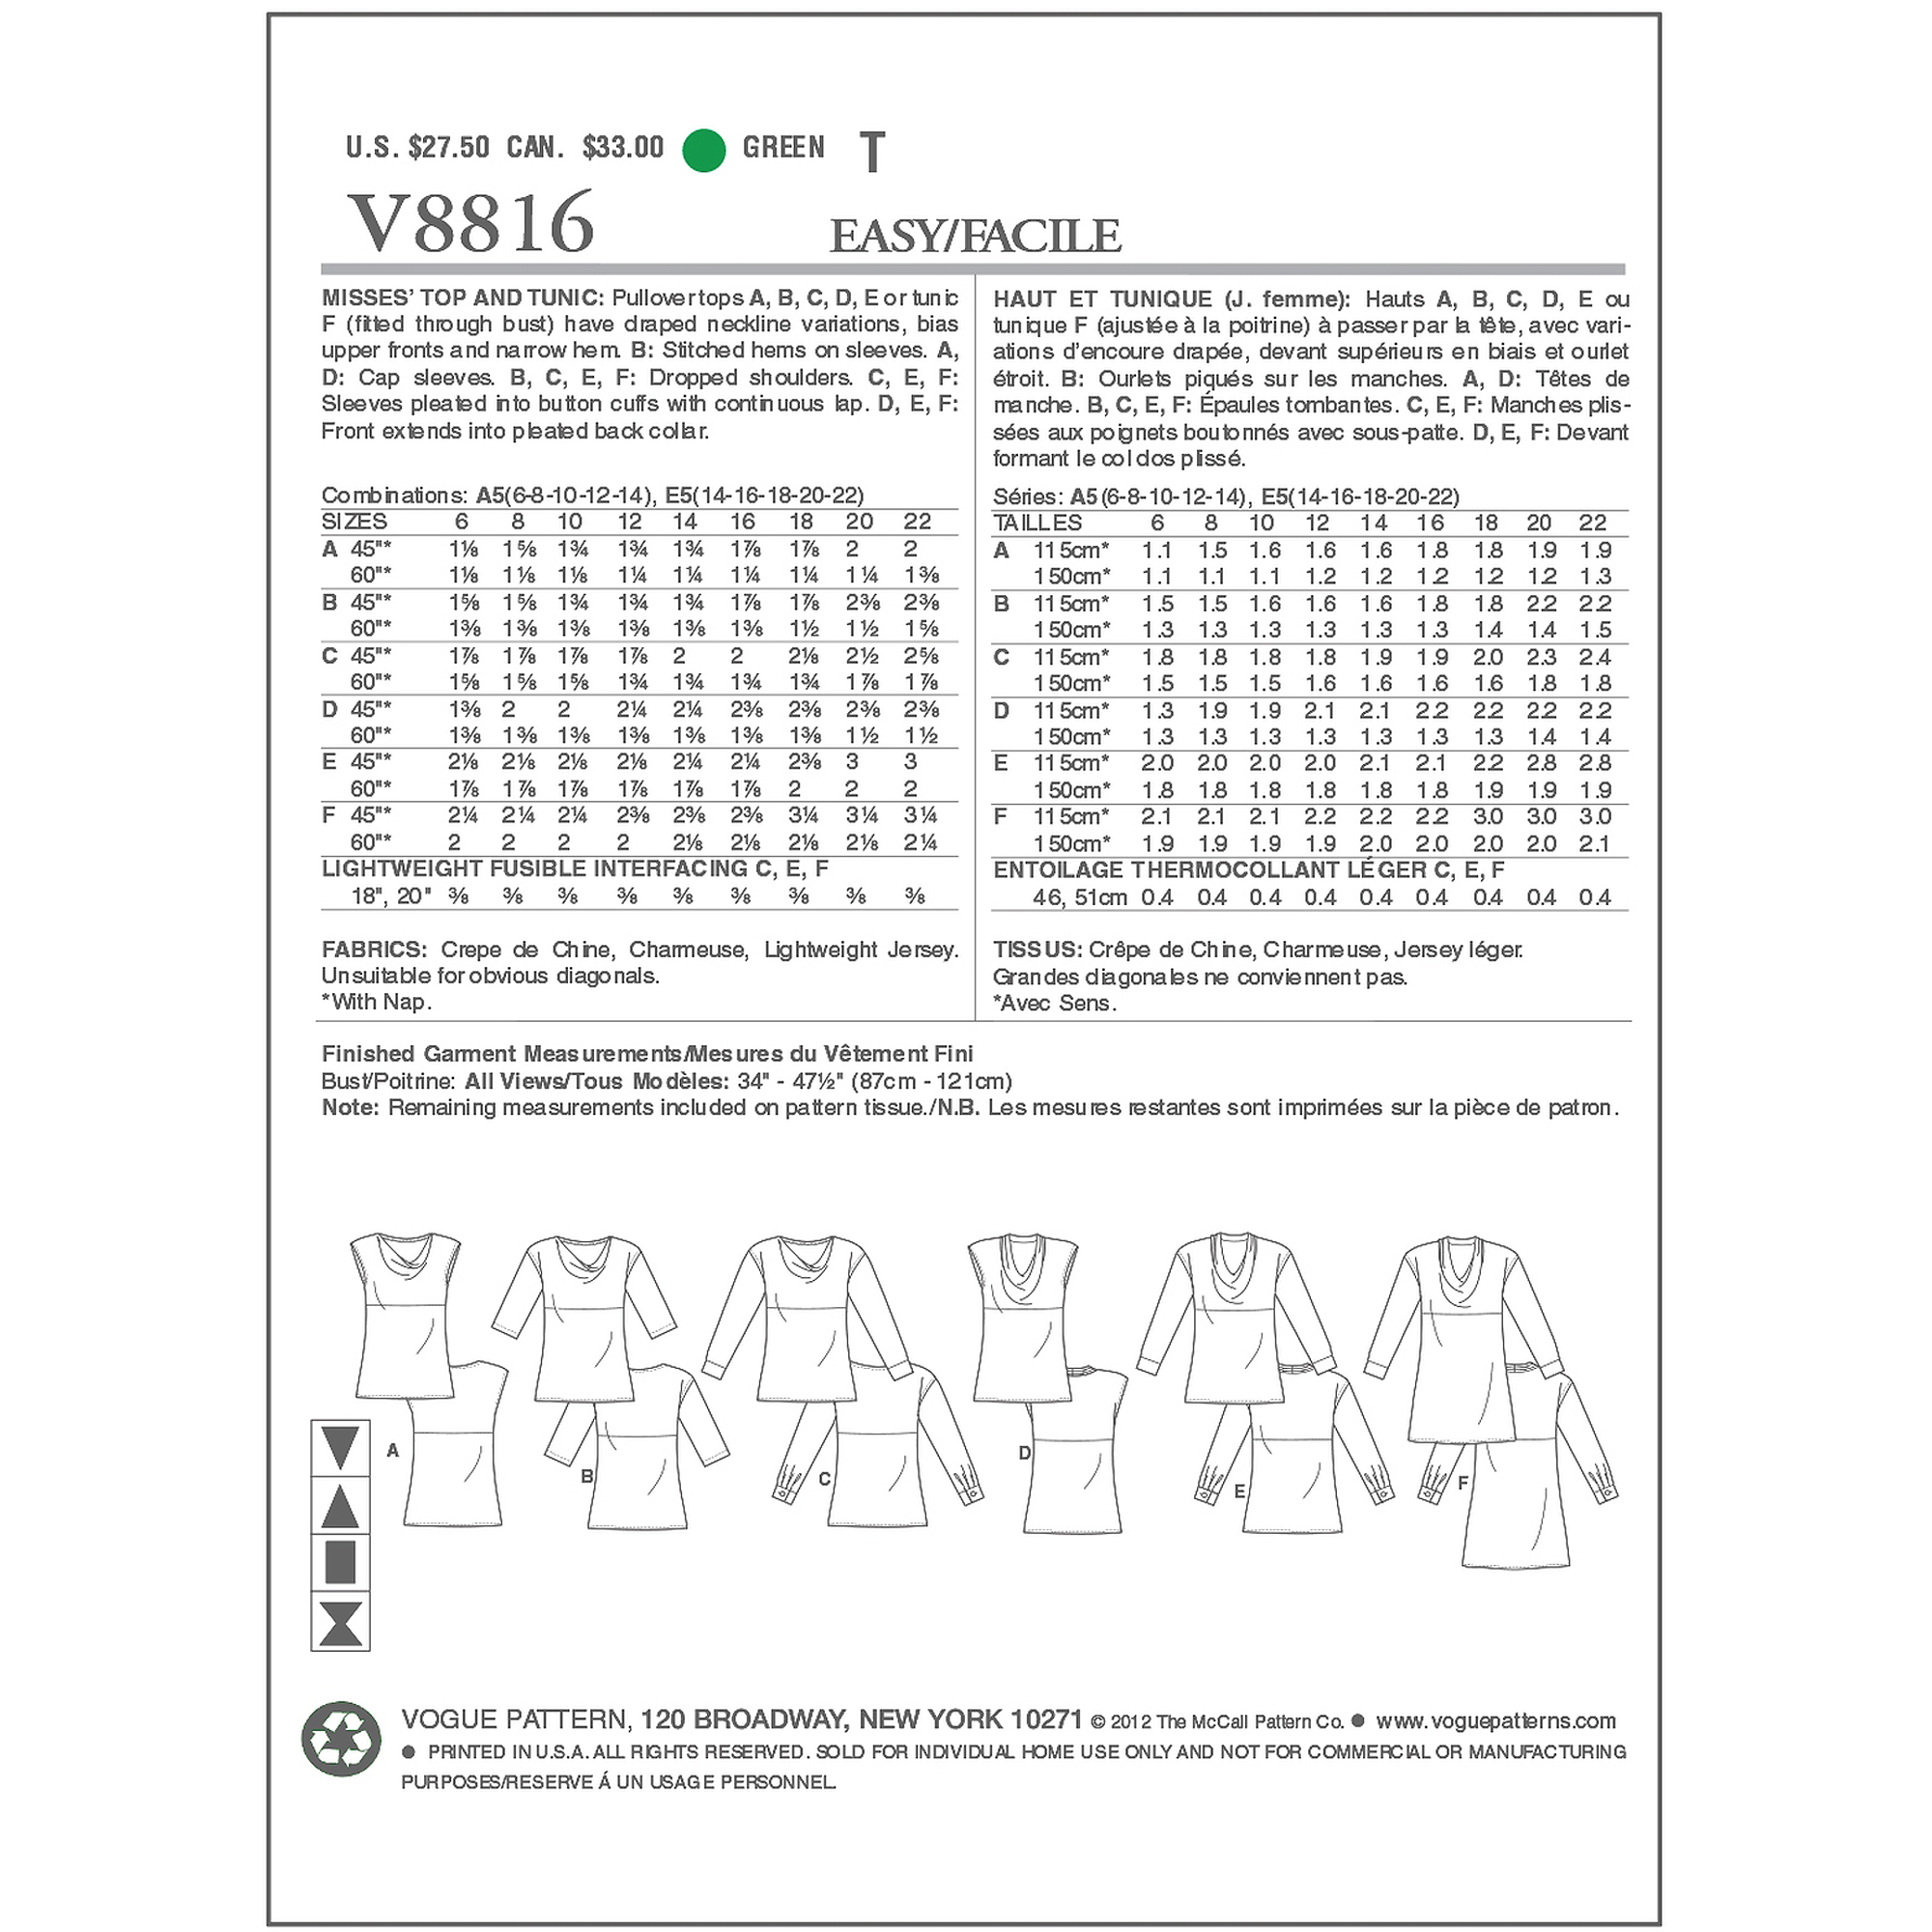 Vogue Pattern Misses' Top, F5 (16, 18, 20, 22, 24)